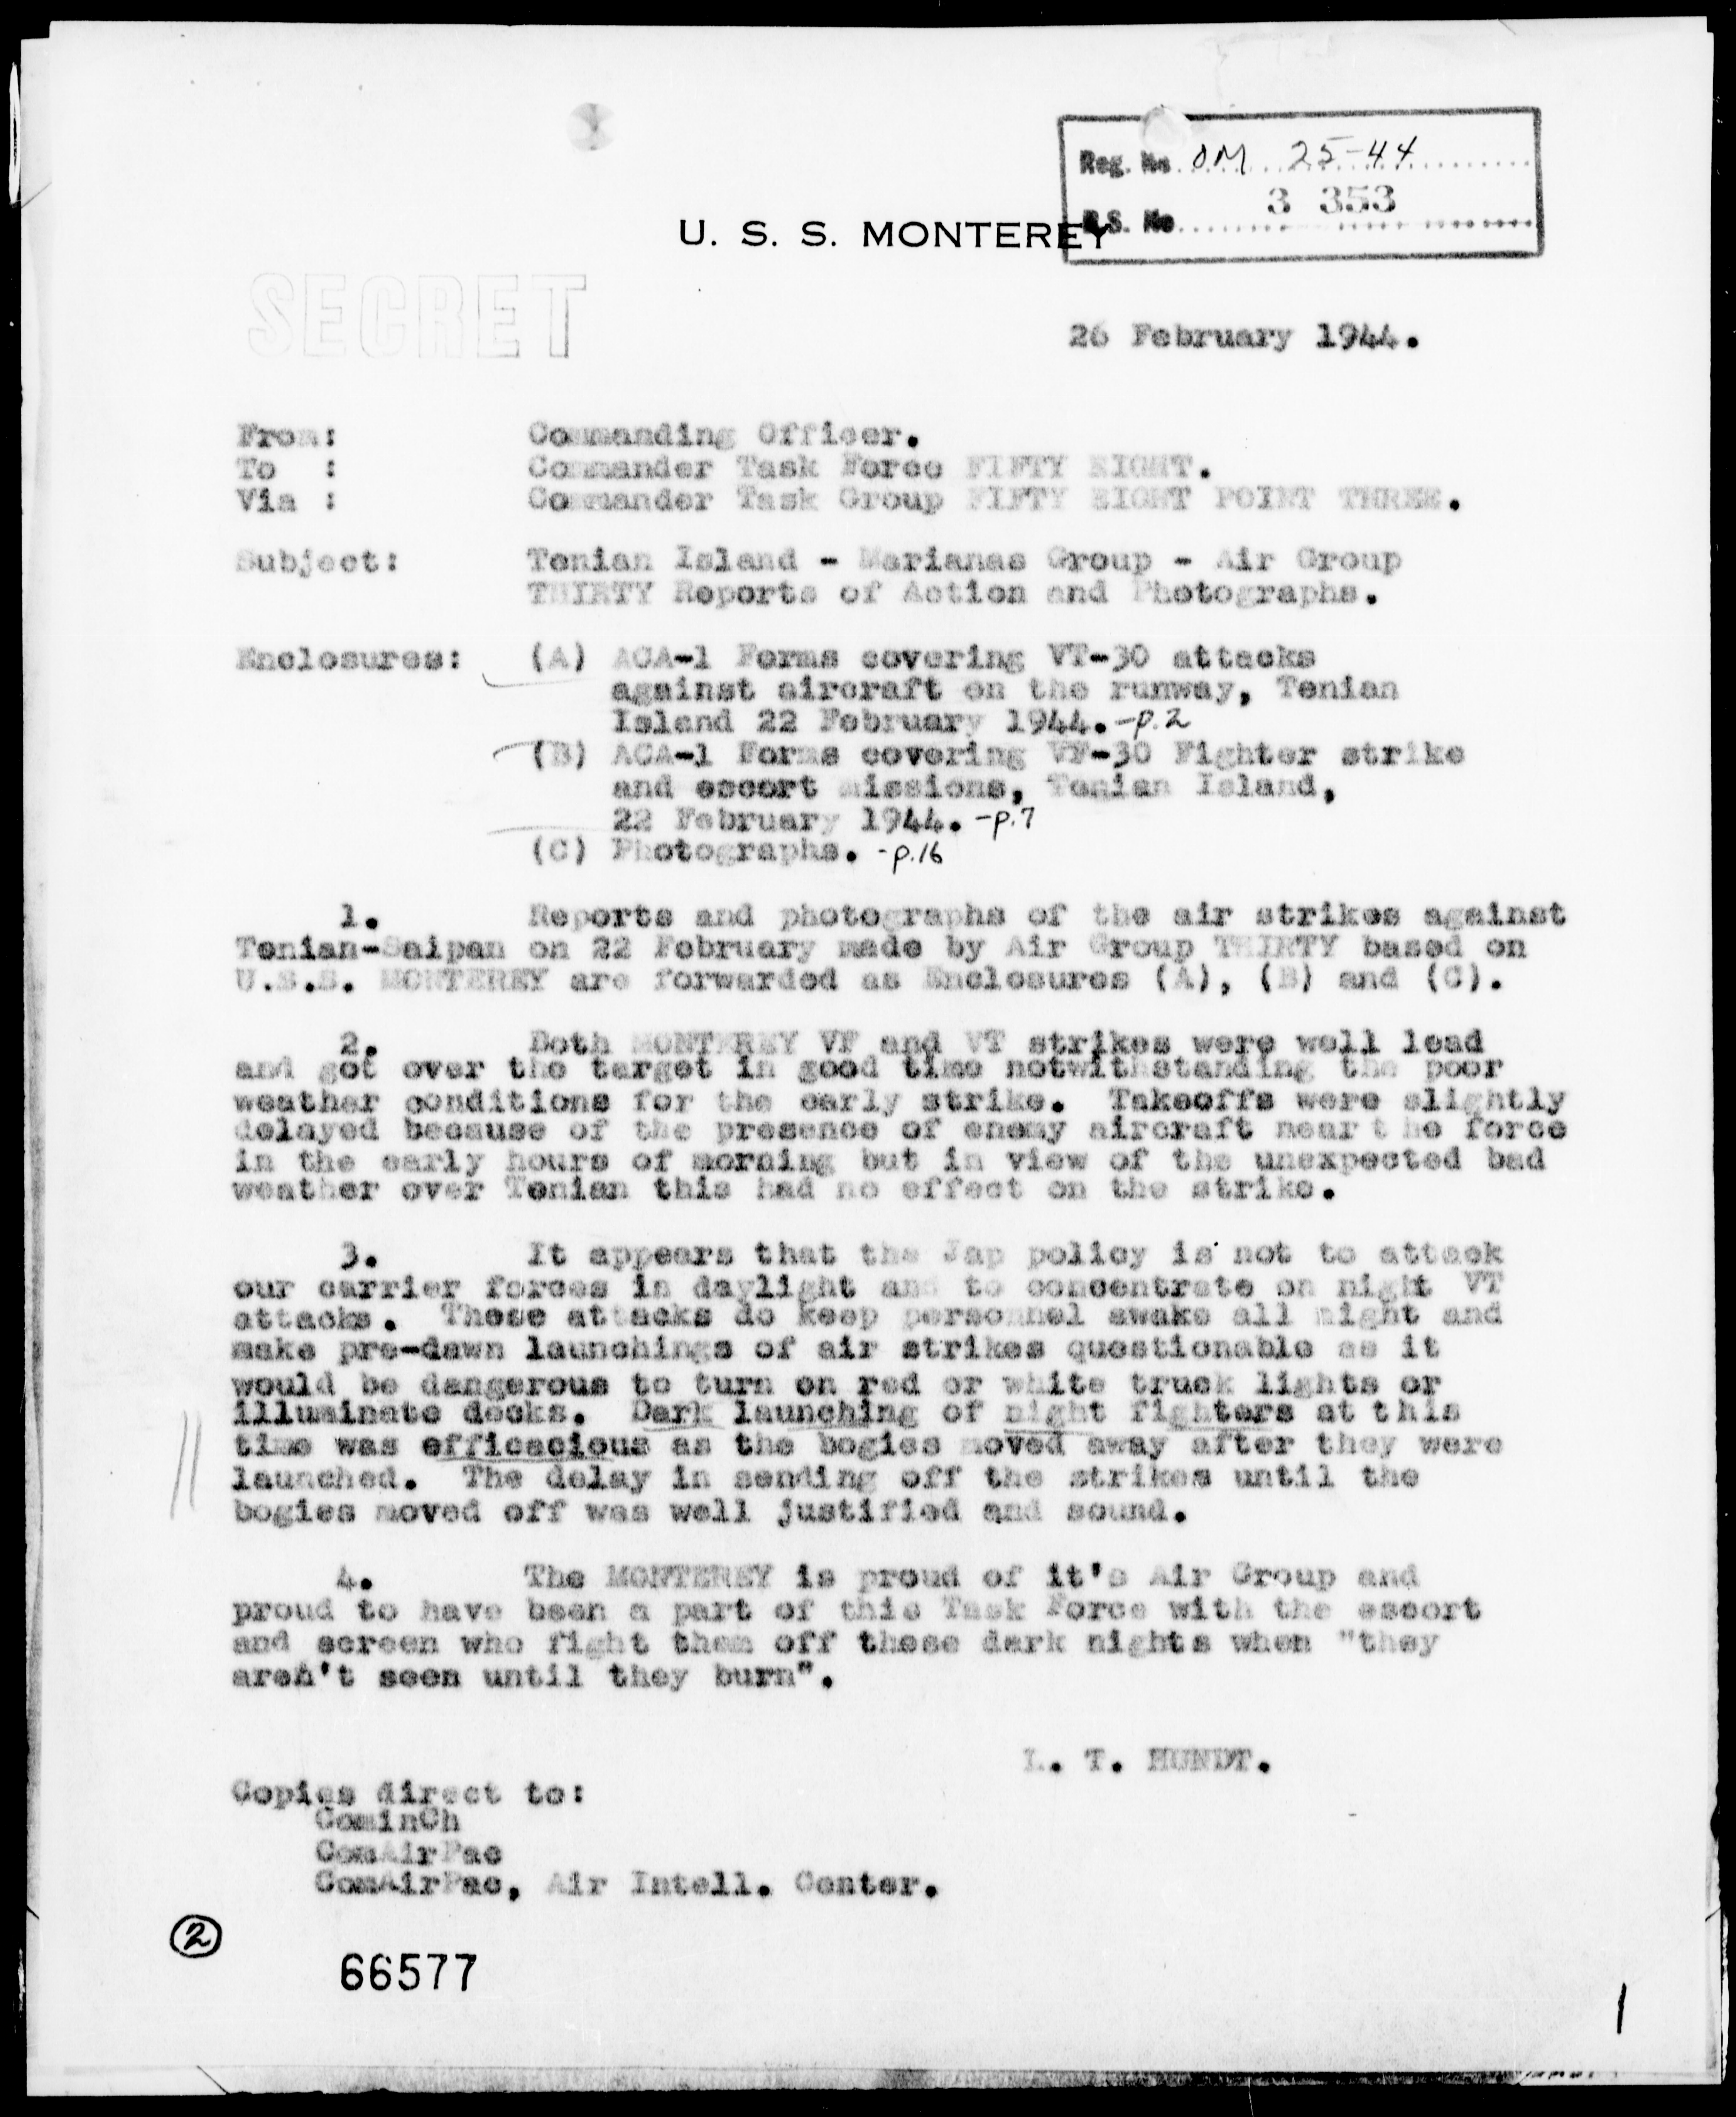 USS MONTEREY - Reports of Act of Air Gr 30 at Tenian Is, Marianas, 2/22/44